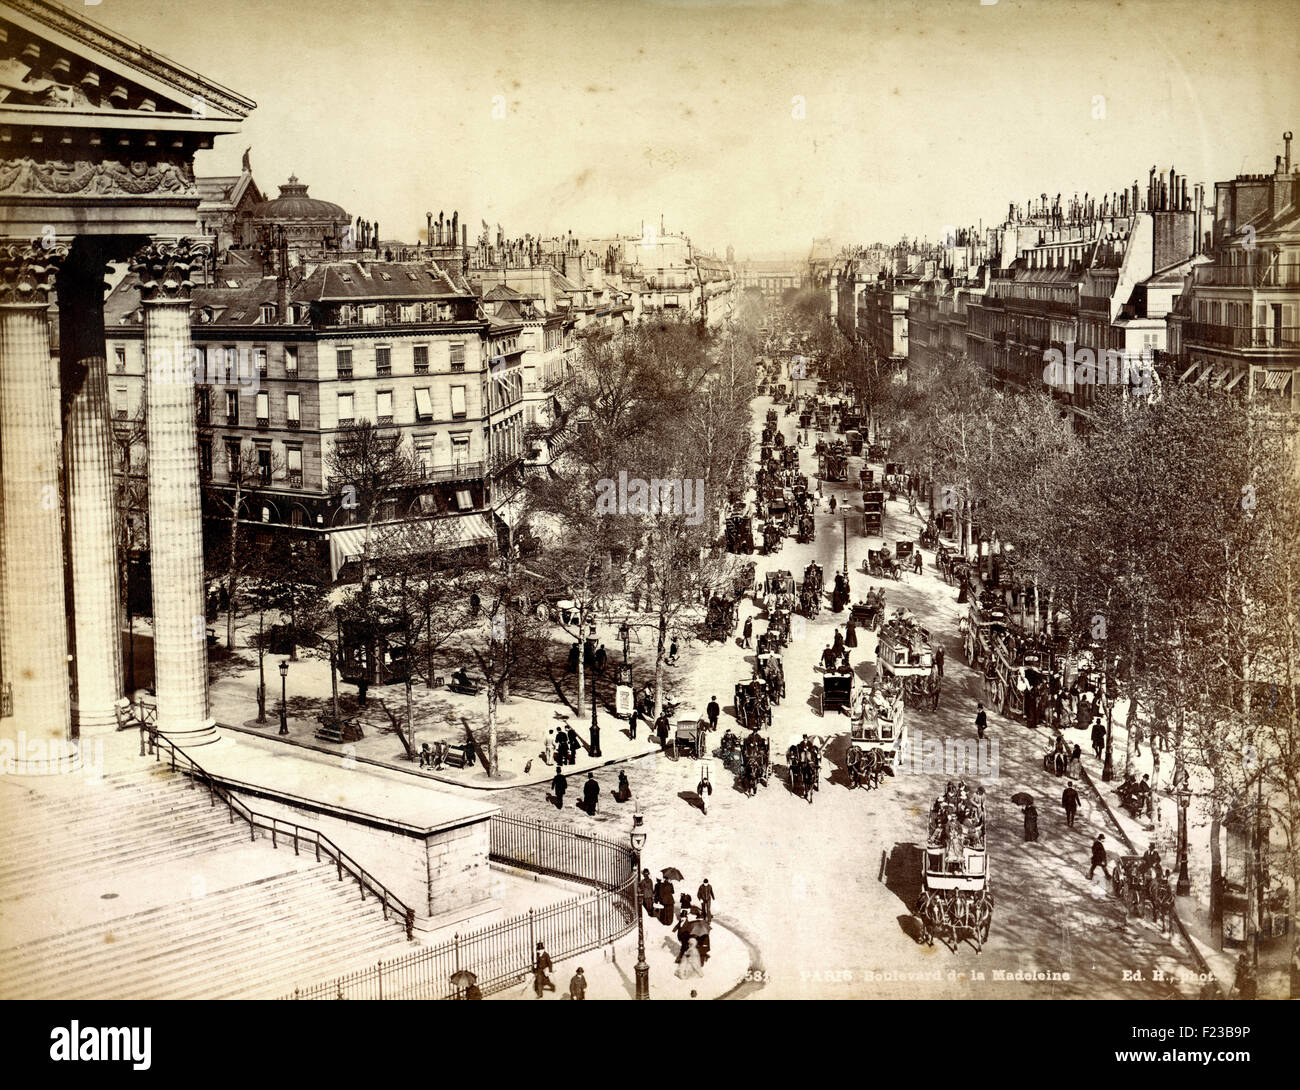 Antique photograph of the Boulevard de la Madeleine, Paris, filled with horses and carriages, in the late 19th Century Stock Photo